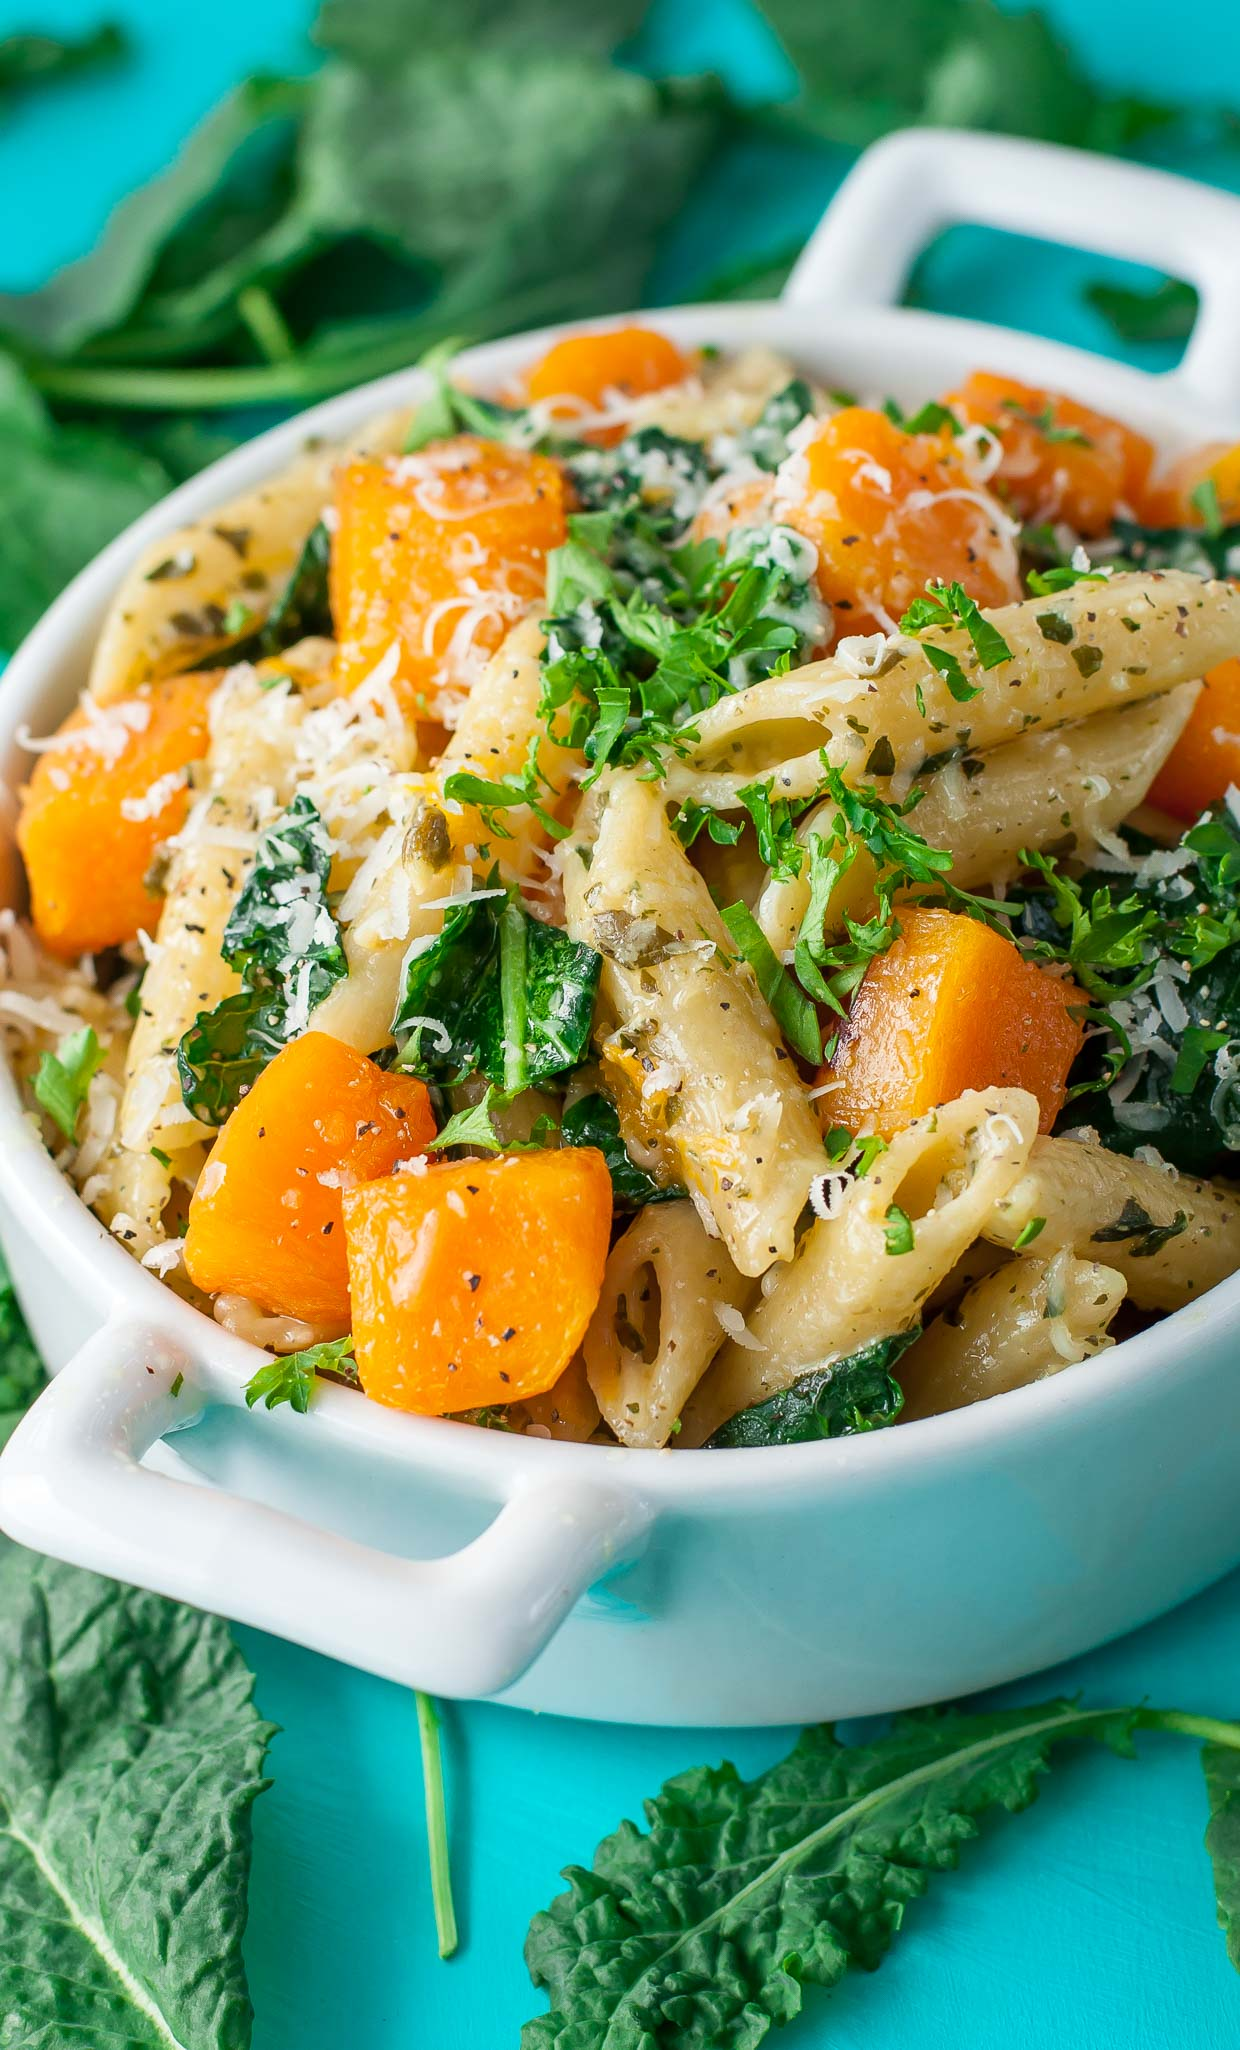 Pesto Pasta with Roasted Butternut Squash and Kale Recipe